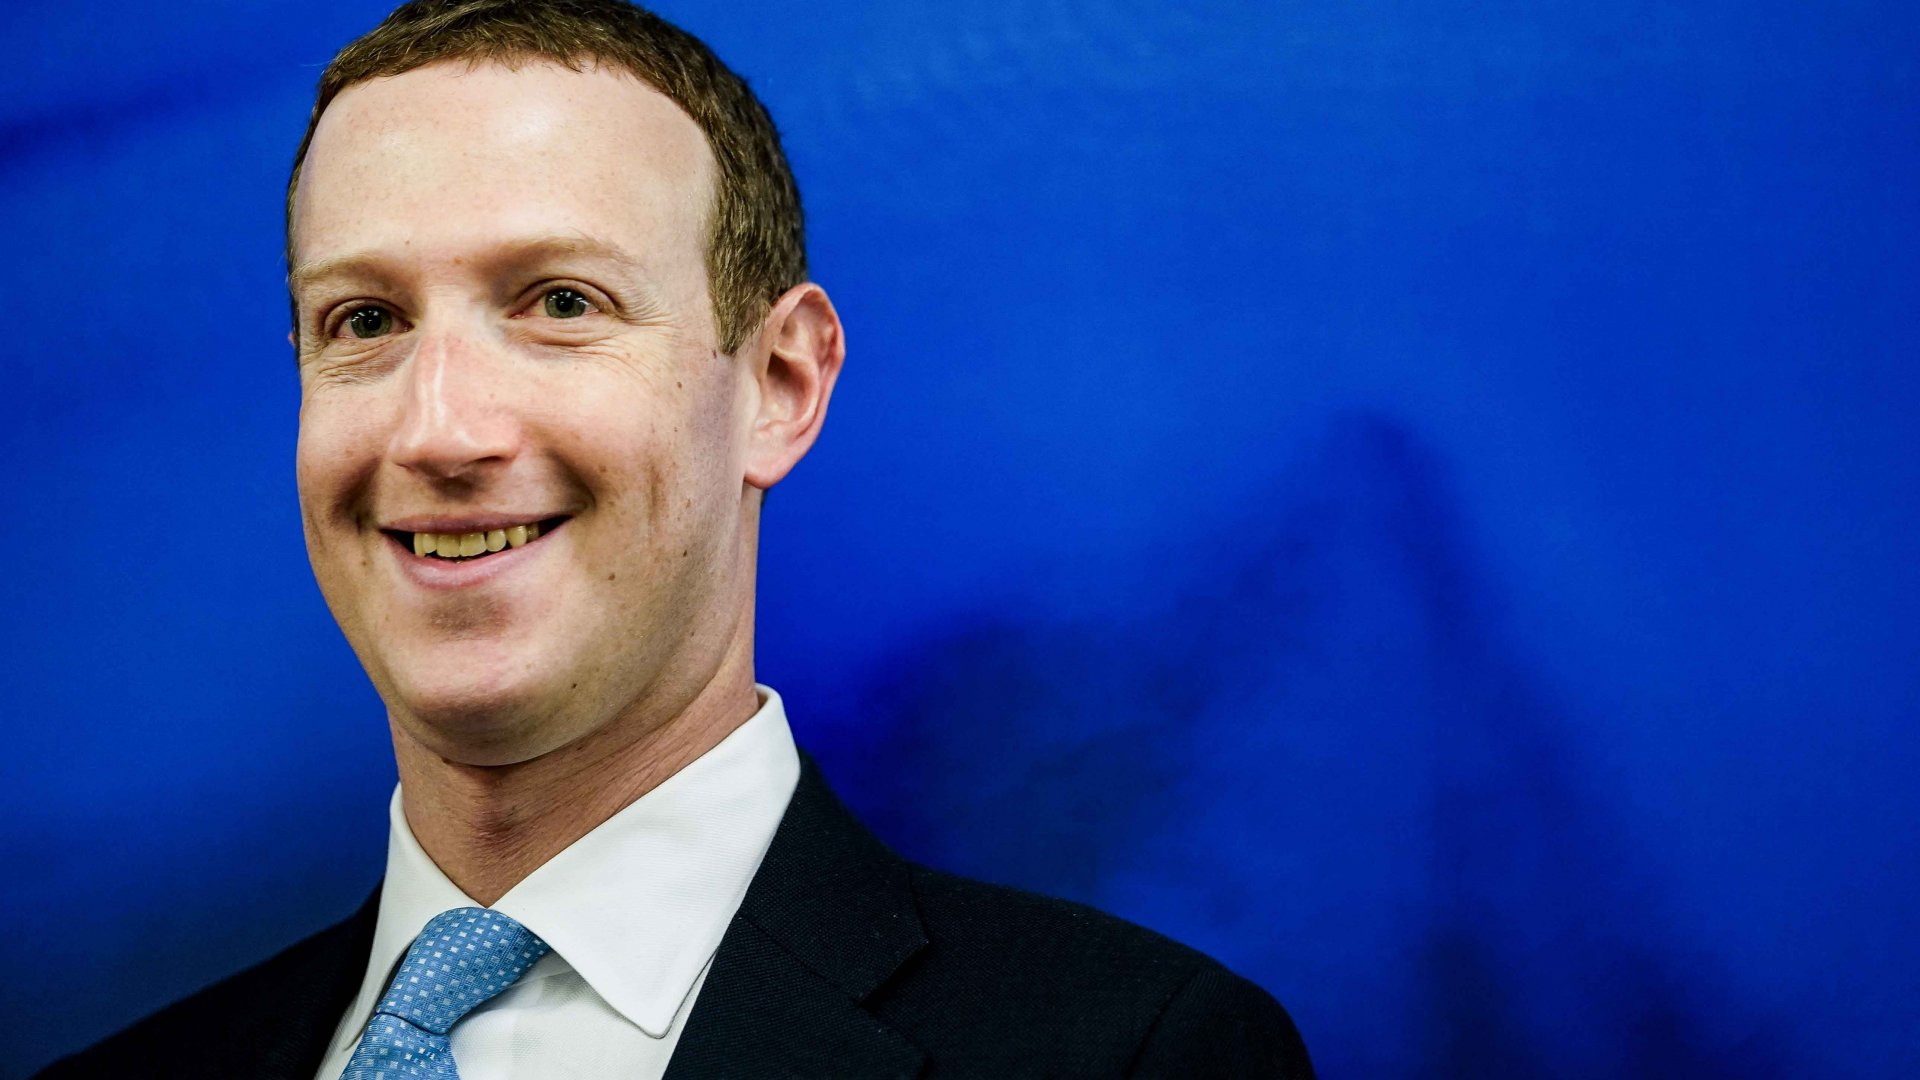 MARK ZUCKERBURG richest person in the world